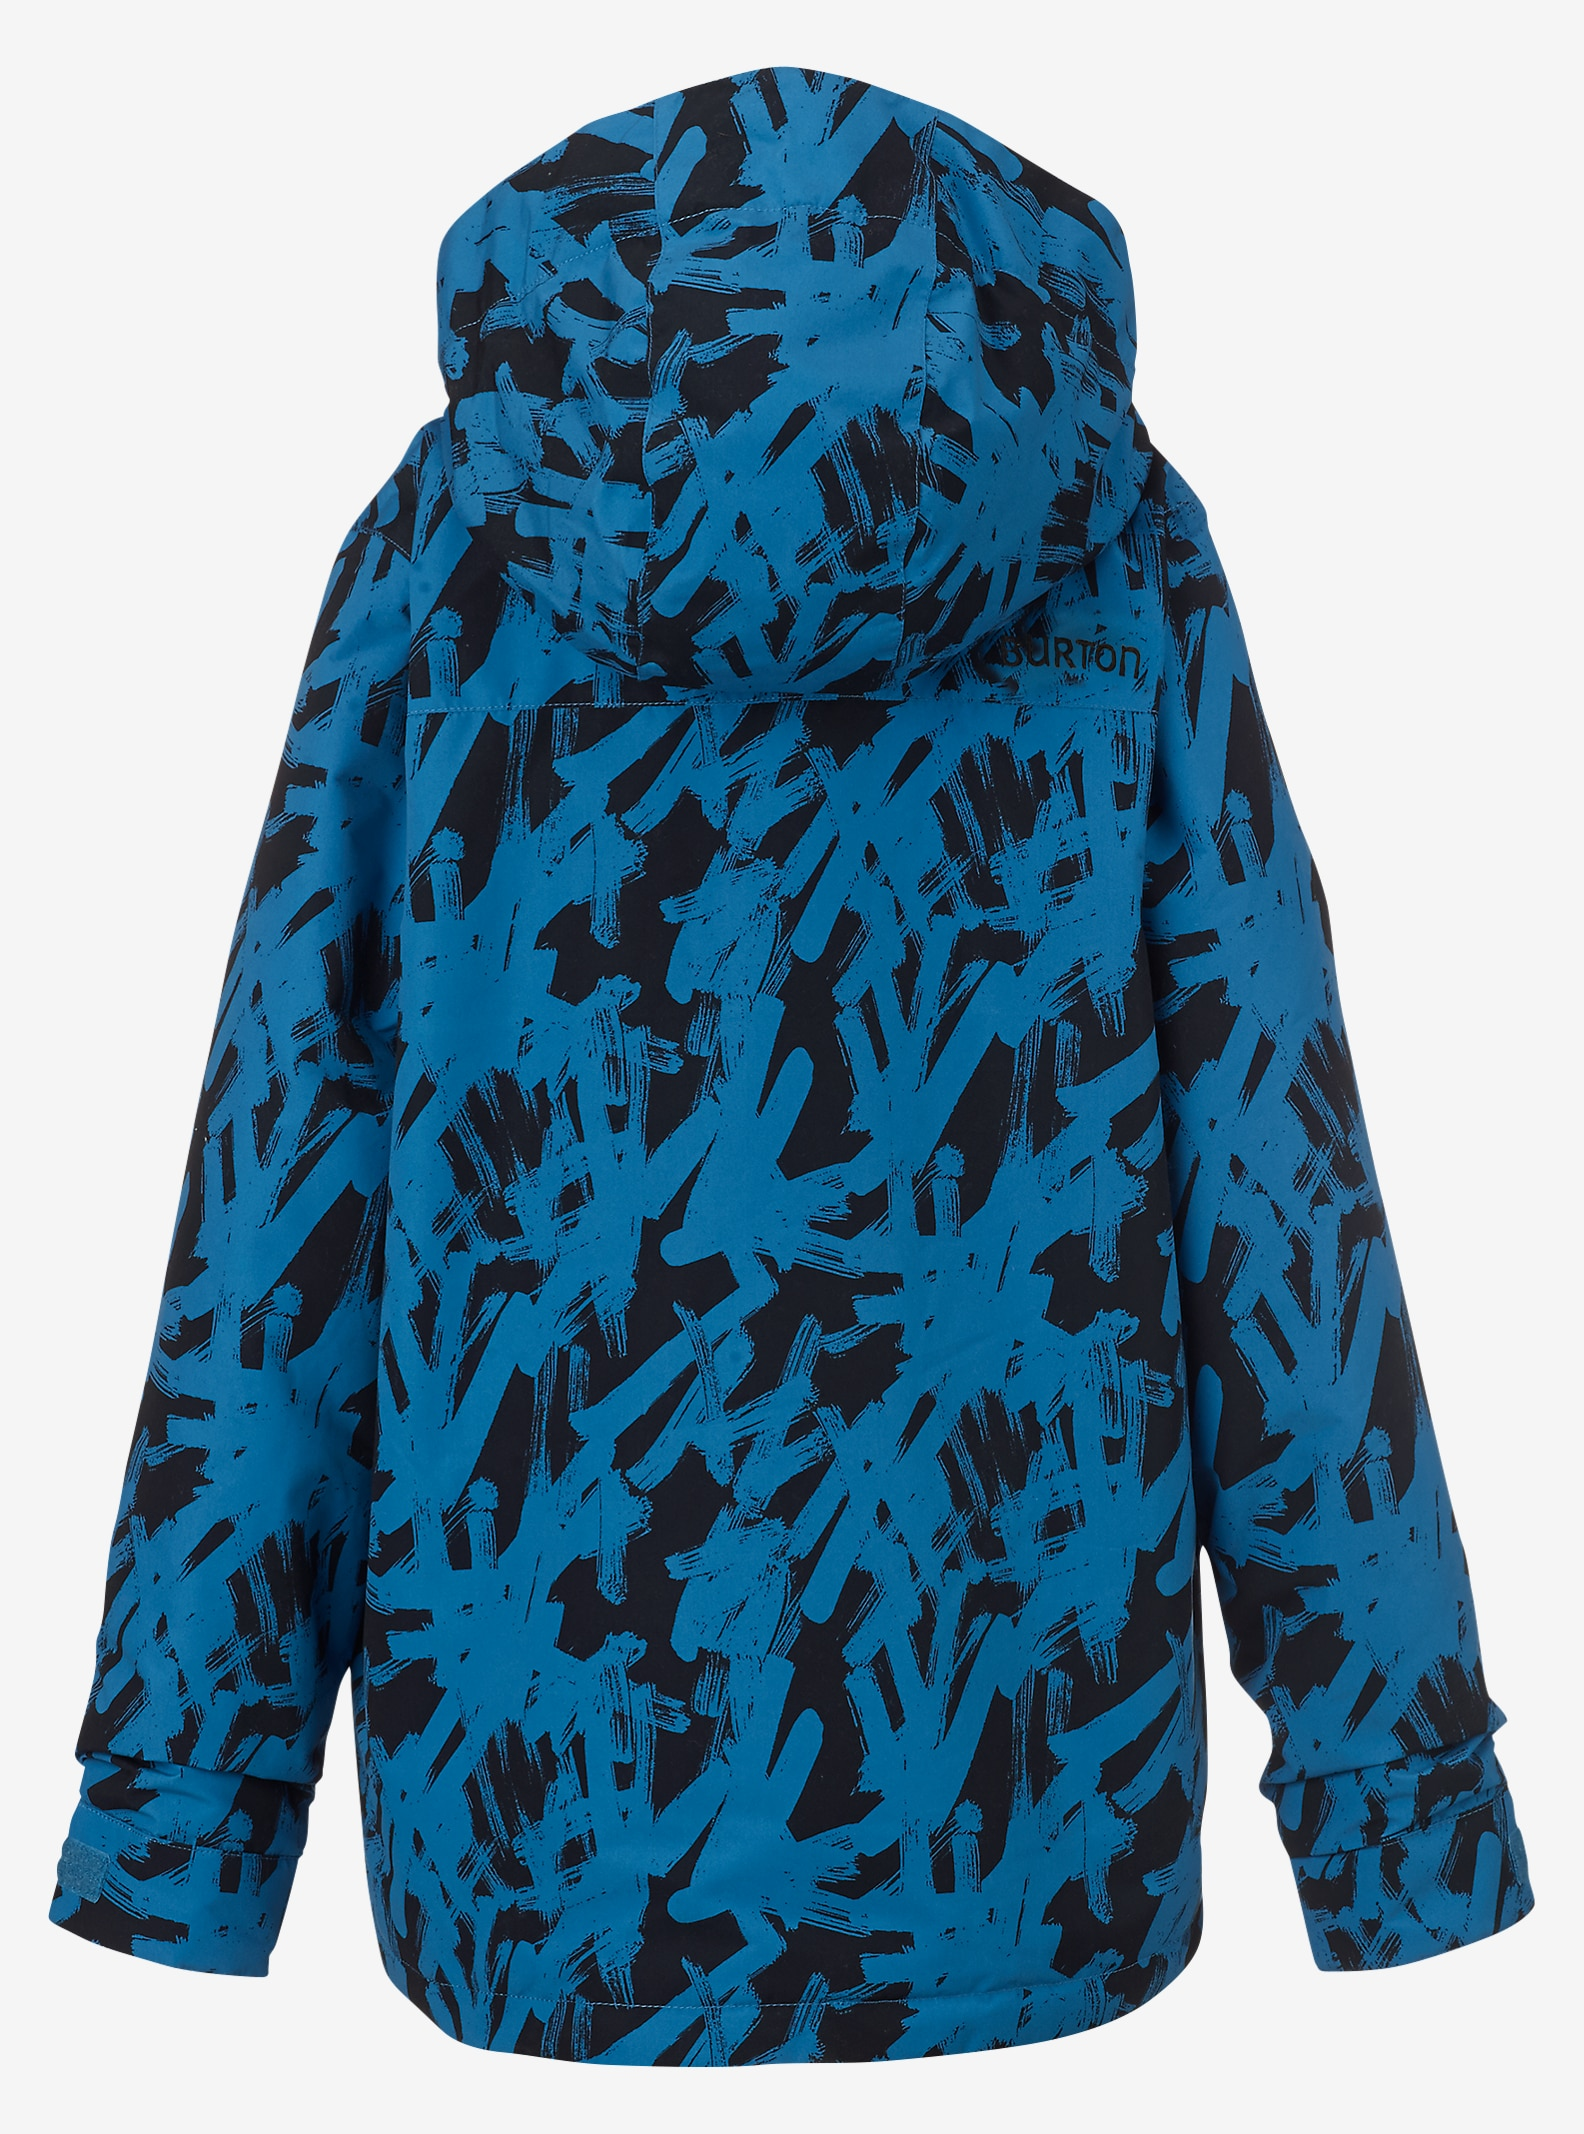 Burton Boys' Link System Jacket shown in Glacier Hashtag